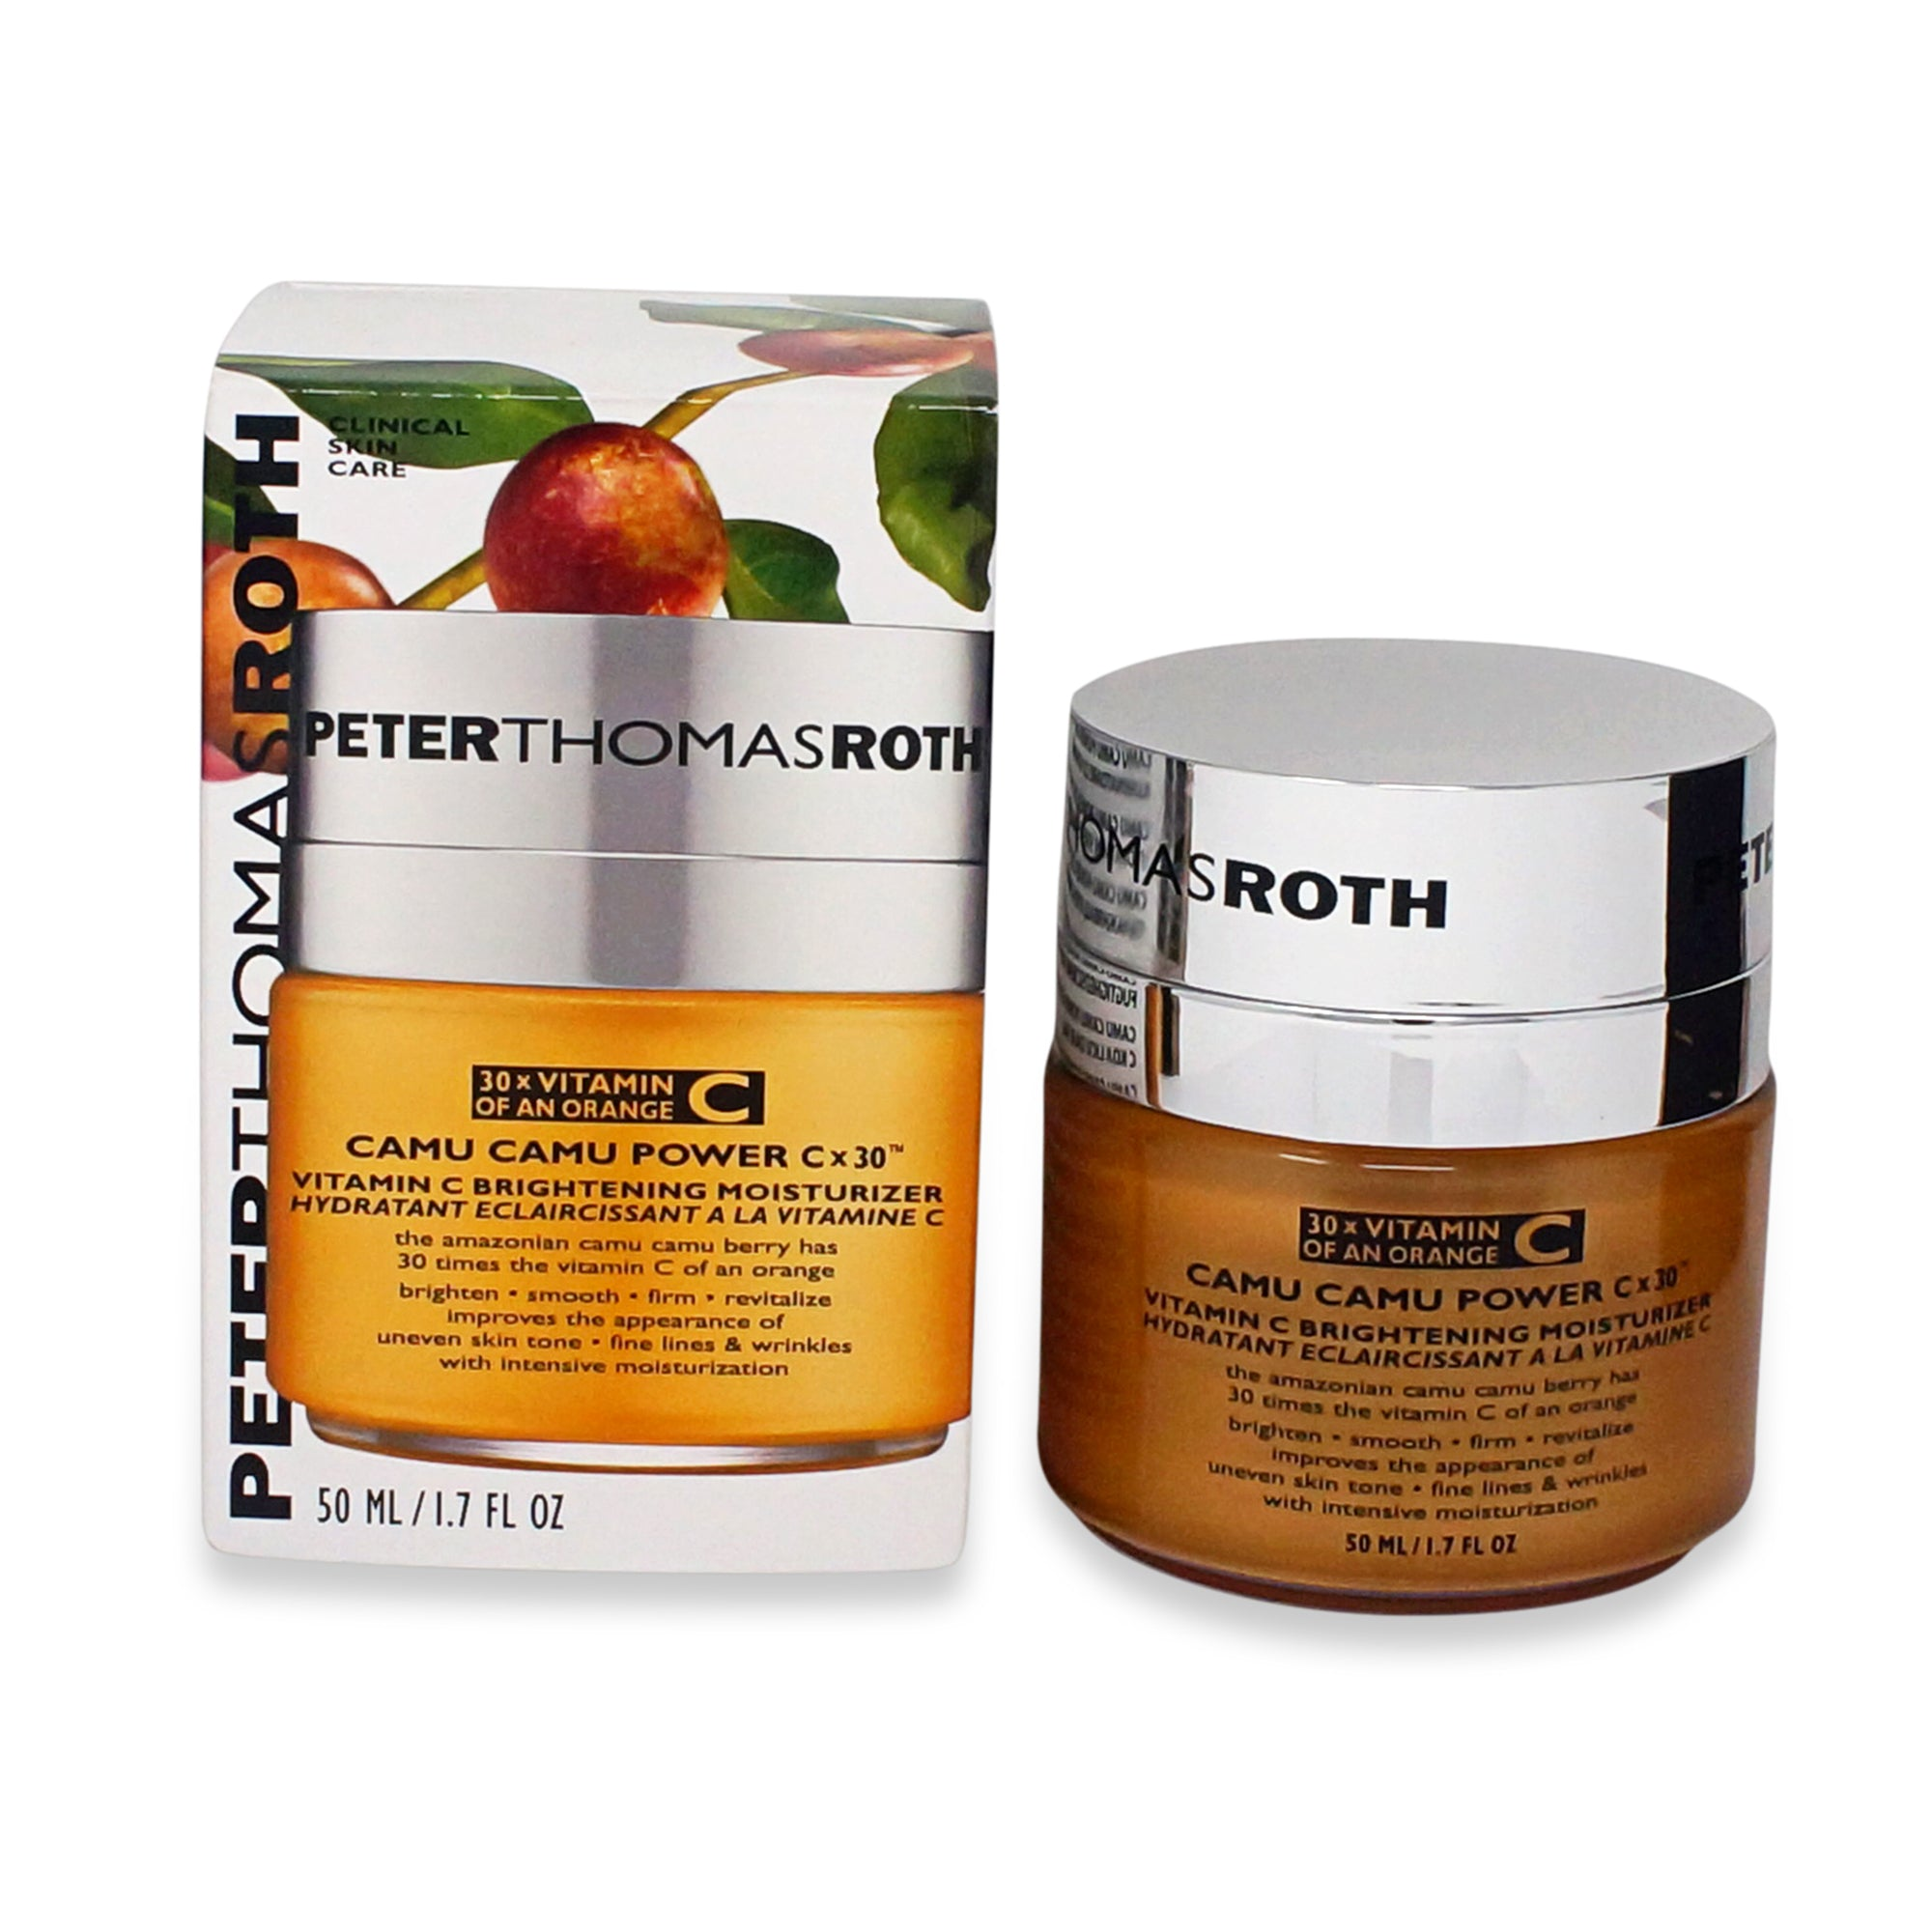 PETER THOMAS ROTH ~ CAMU CAMU POWER CX30 VITAMIN C BRIGHTENING MOISTURIZER ~ 1.7 FL OZ *2018*